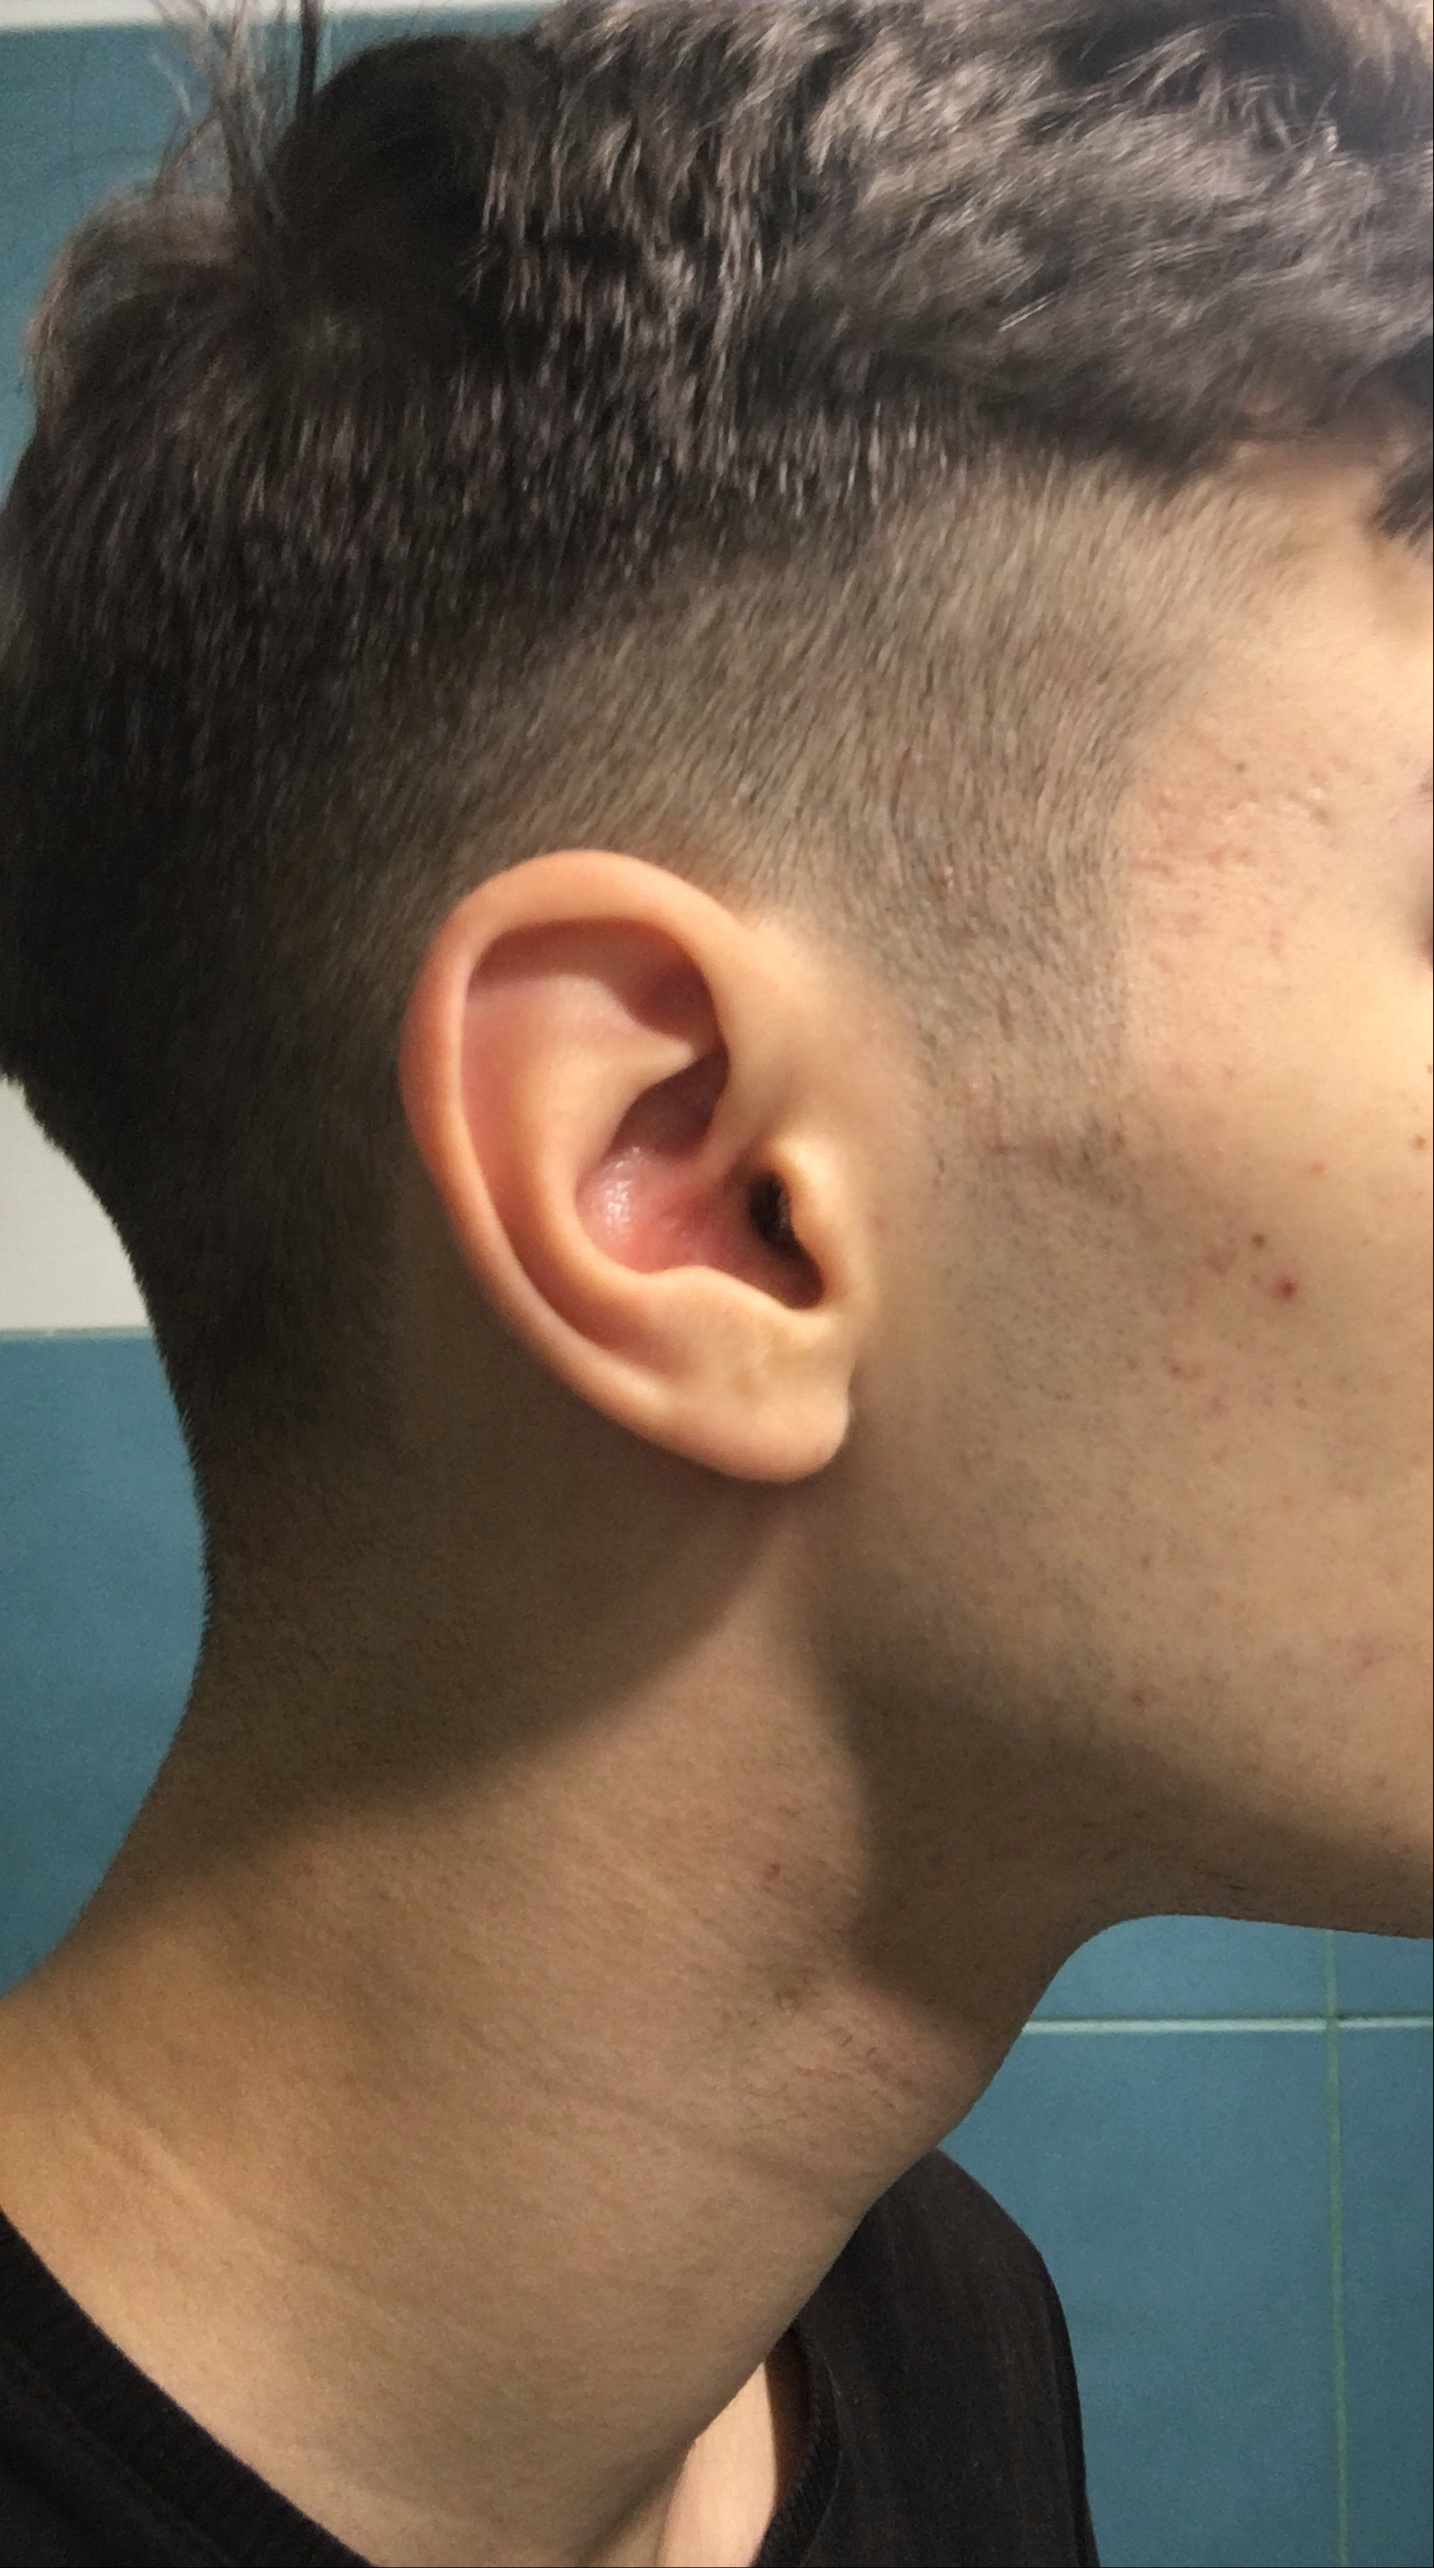 acne after accutane